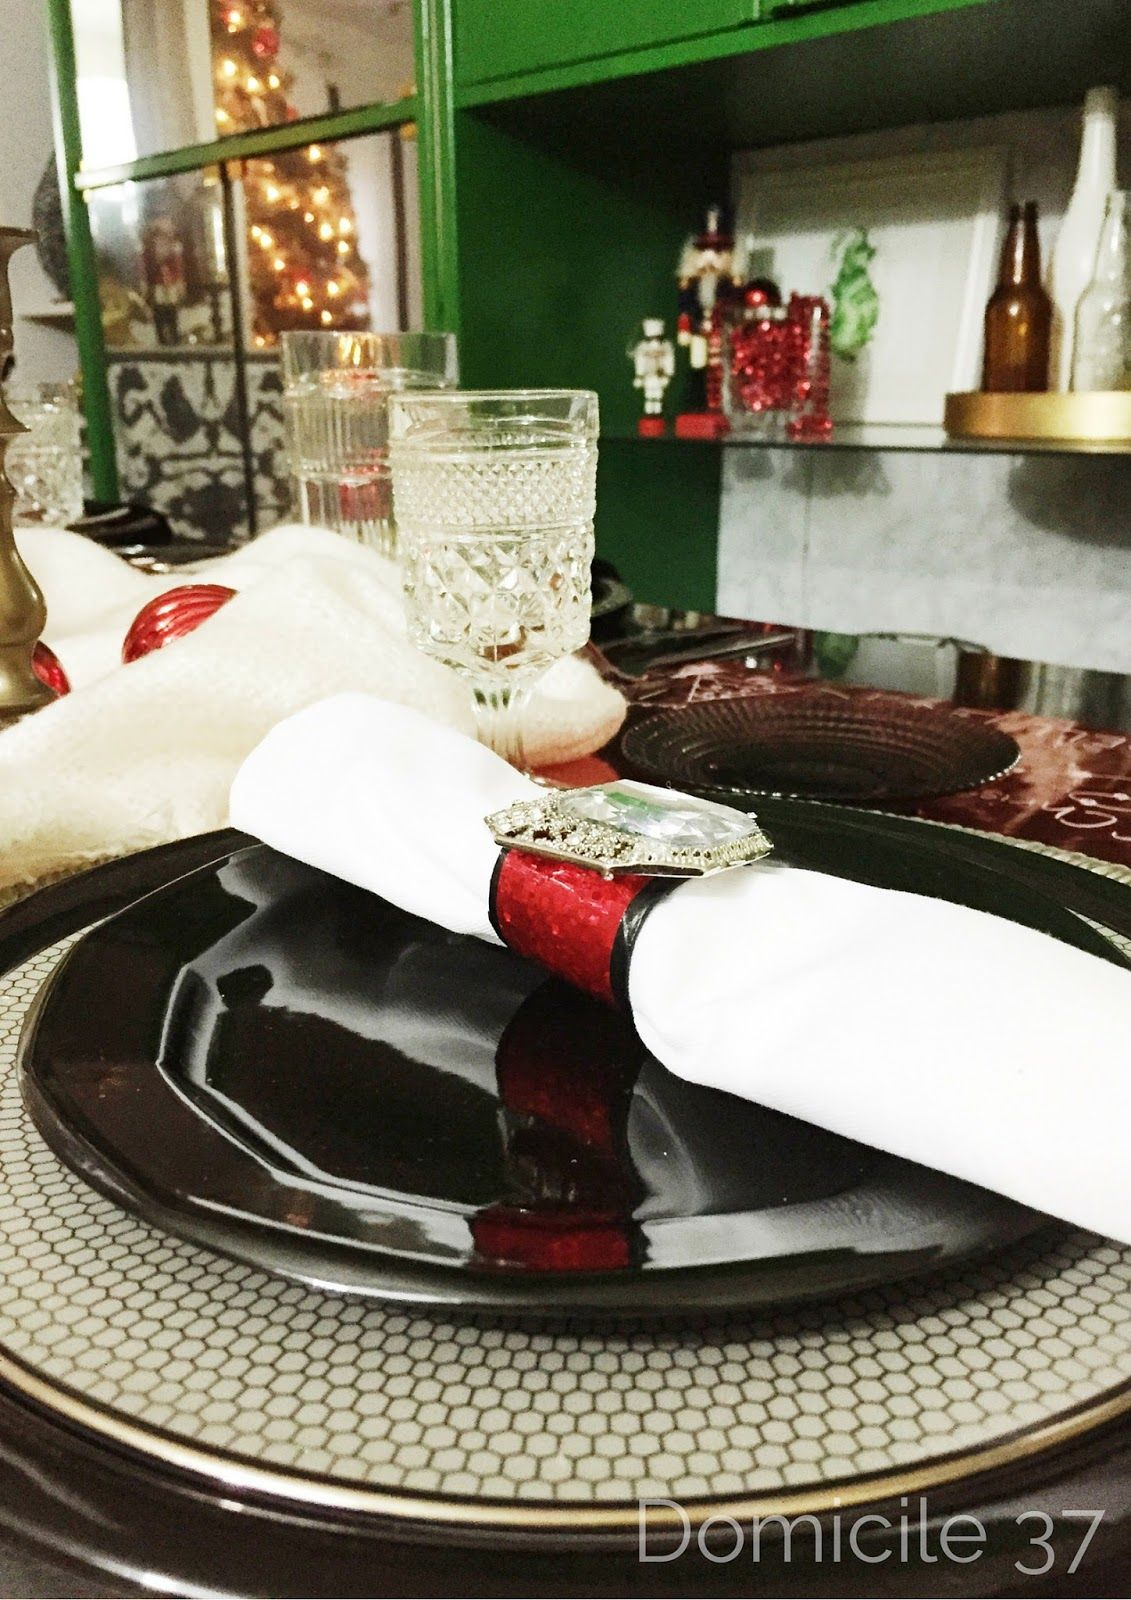 Remarkable table setting with napkin rings ideas best image engine santas belt buckle napkin ring and a christmas table setting santa s belt buckle napkin ring and a christmas table setting solutioingenieria Images